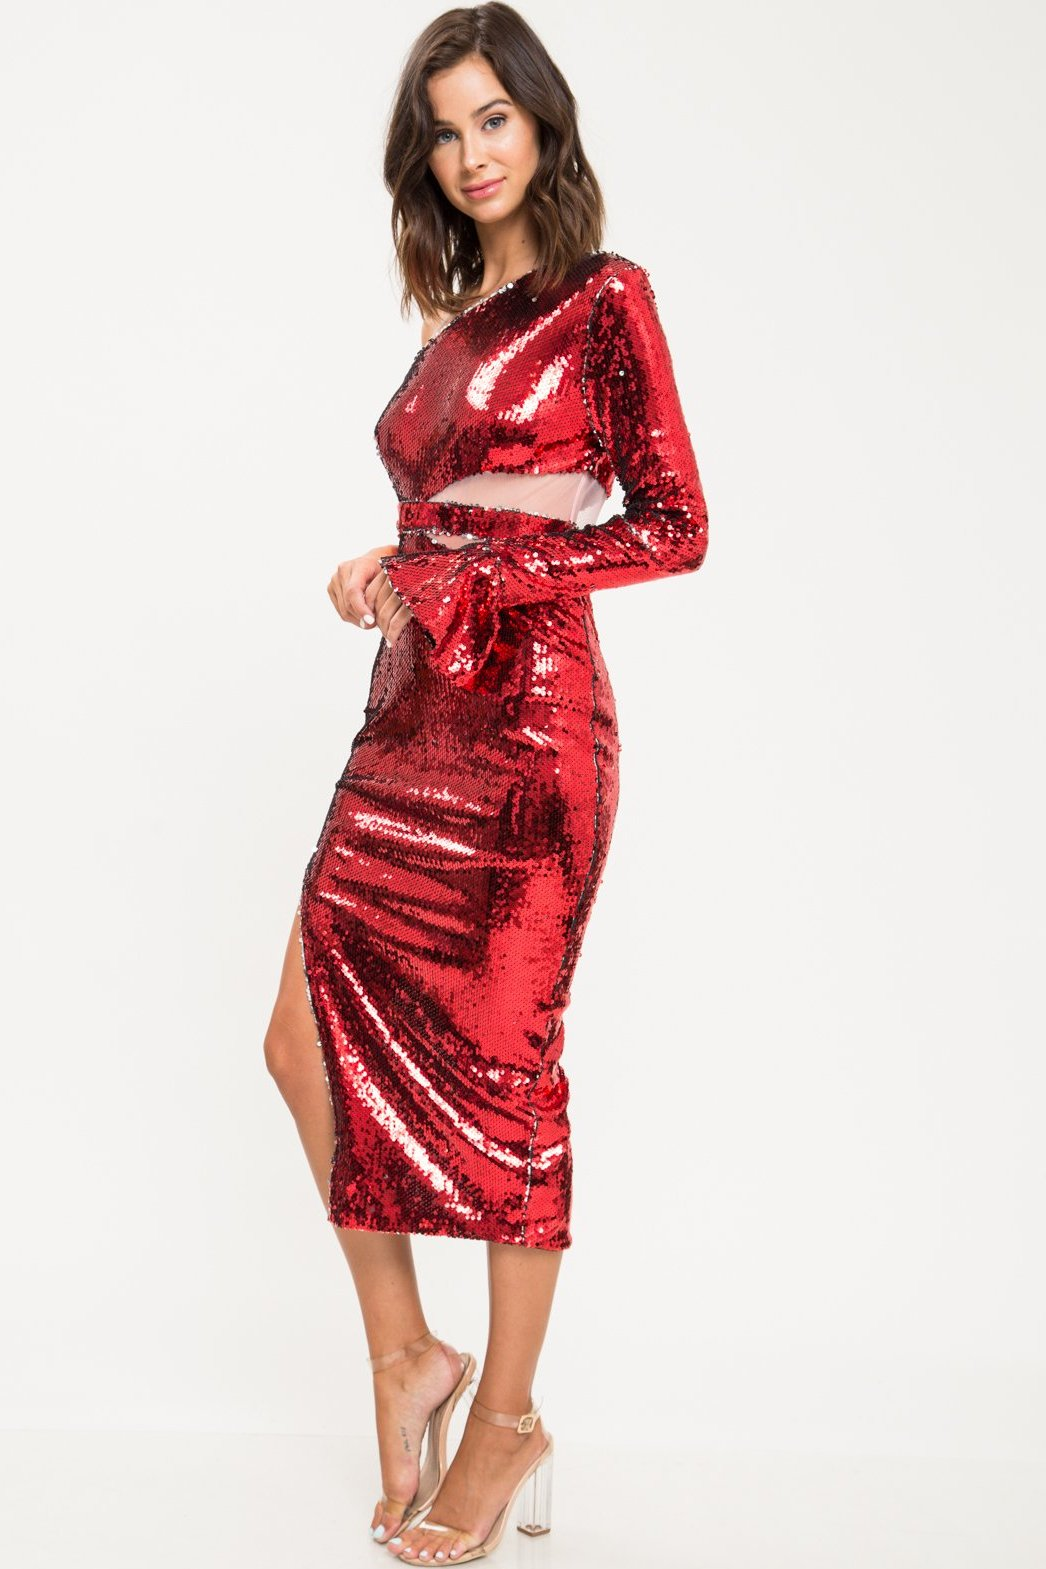 Mezcal Sequin Midi Dress - Geegeebae